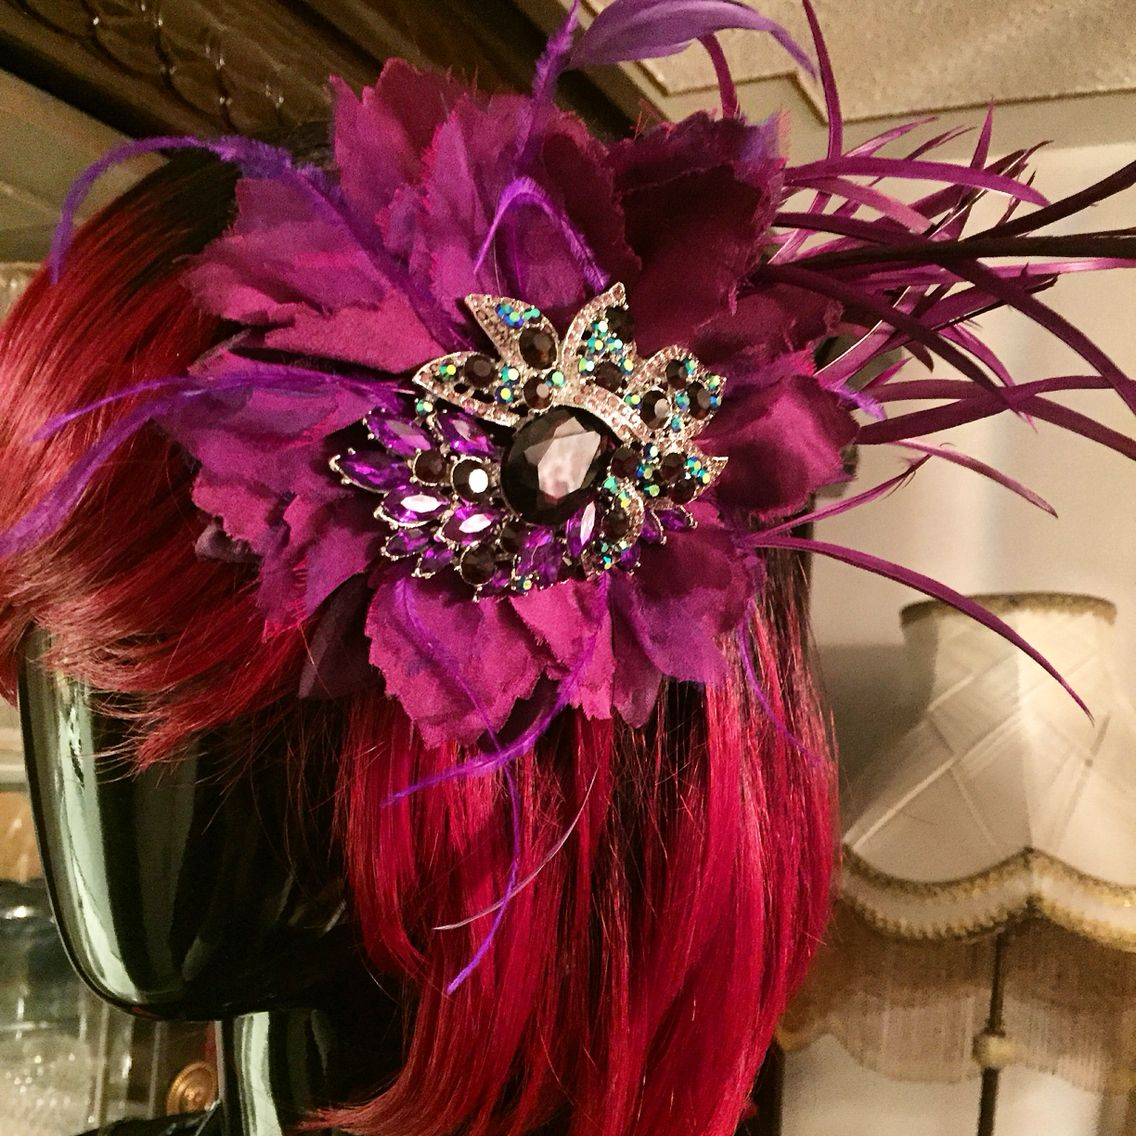 "New item I just did for a customer. Thought I'd share. Could be yours today! Available in all fabulous colors. Go home with yours today. ""Beauty is how you wear it and what's inside you."" #beauty #desireebydesign #hairclip #wine #purple #feathers #handmade #couture #hairaccessories"